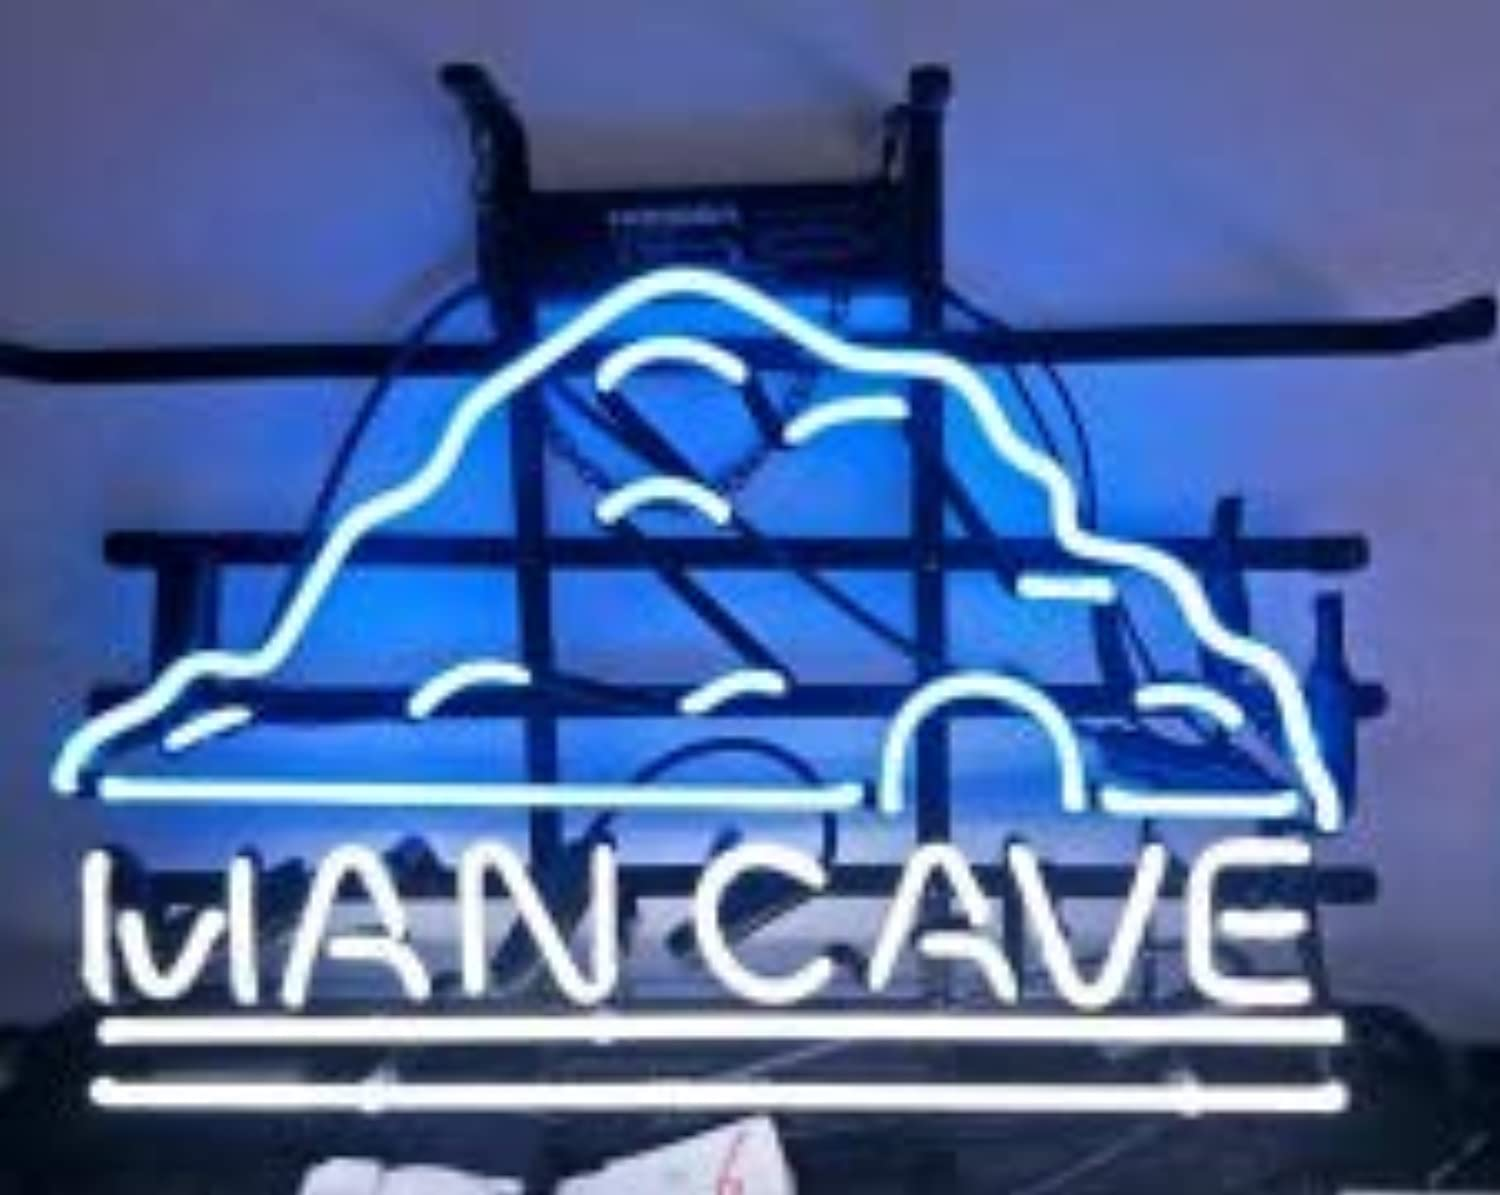 Man cave Hand Crafted Glass Tube neon Sign 17(w) insx13(h) ins Neon Sign Lights Beer Bar Sign